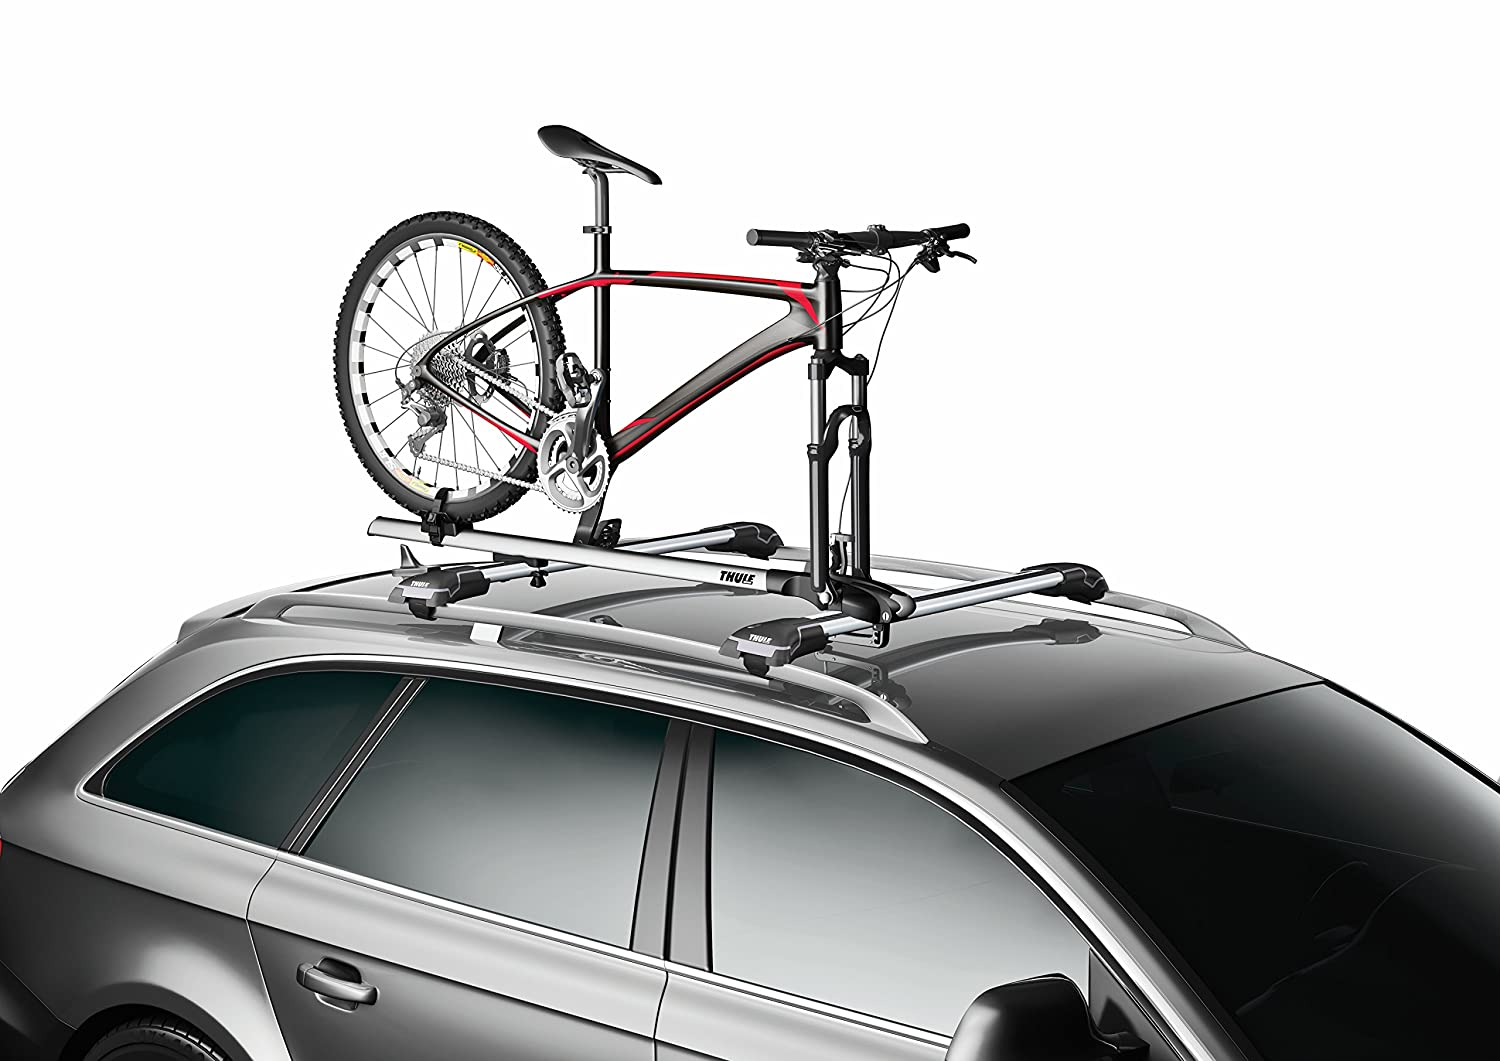 Amazon.com : Thule 535 ThruRide Roof Bike Rack Fork Mount For Use W/Thule  Rack Systems/Round Bars/Factory Racks ThruRide Roof Bike Rack : Sports  Outdoors ...